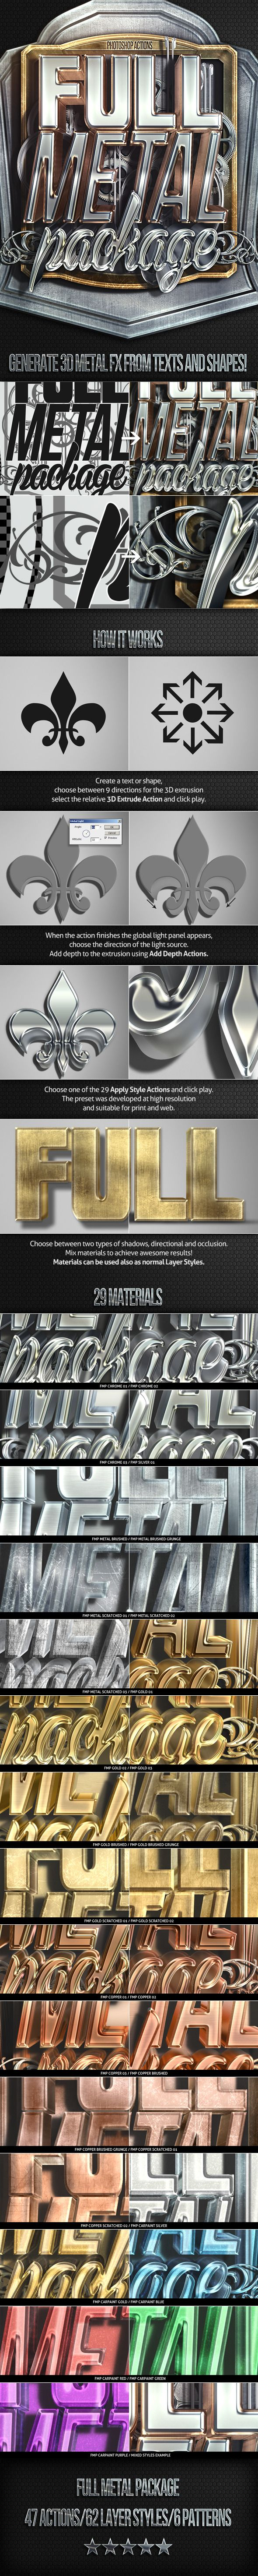 Full Metal Package 3D - Photoshop Actions. Download here: http://graphicriver.net/item/full-metal-package-3d-photoshop-actions/7947591?ref=ksioks